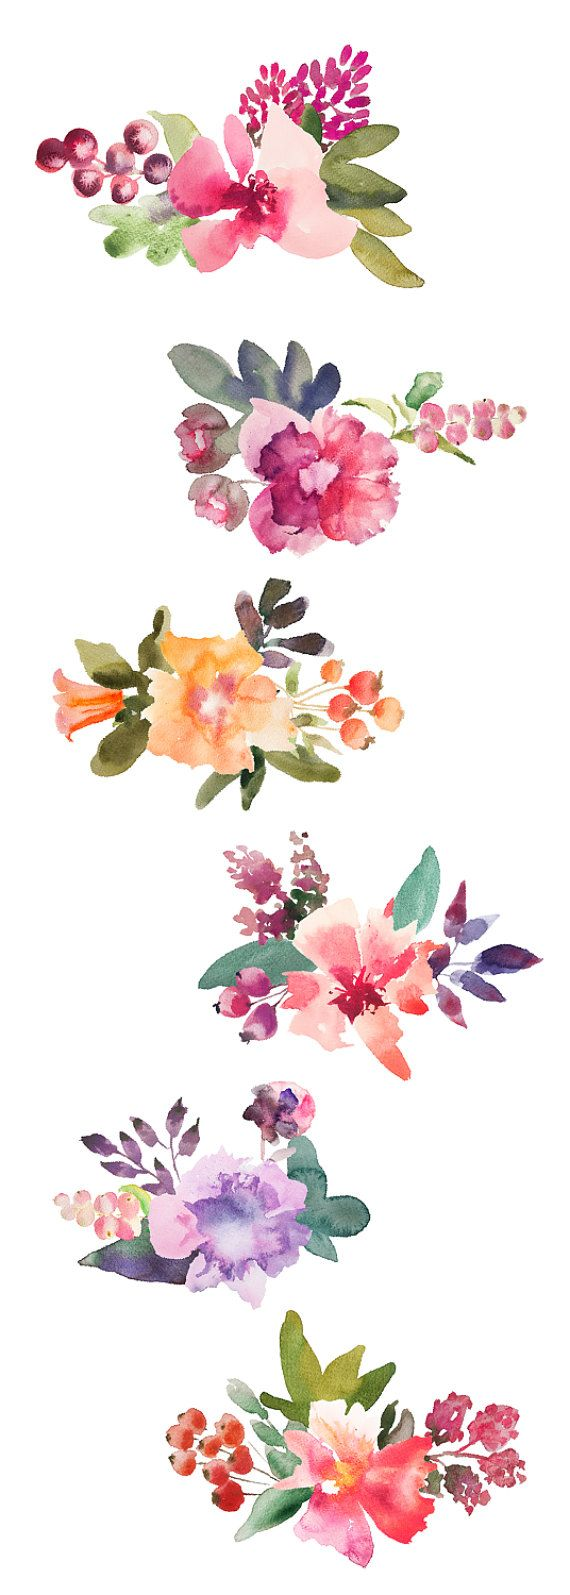 Watercolor Floral Transparent Background.